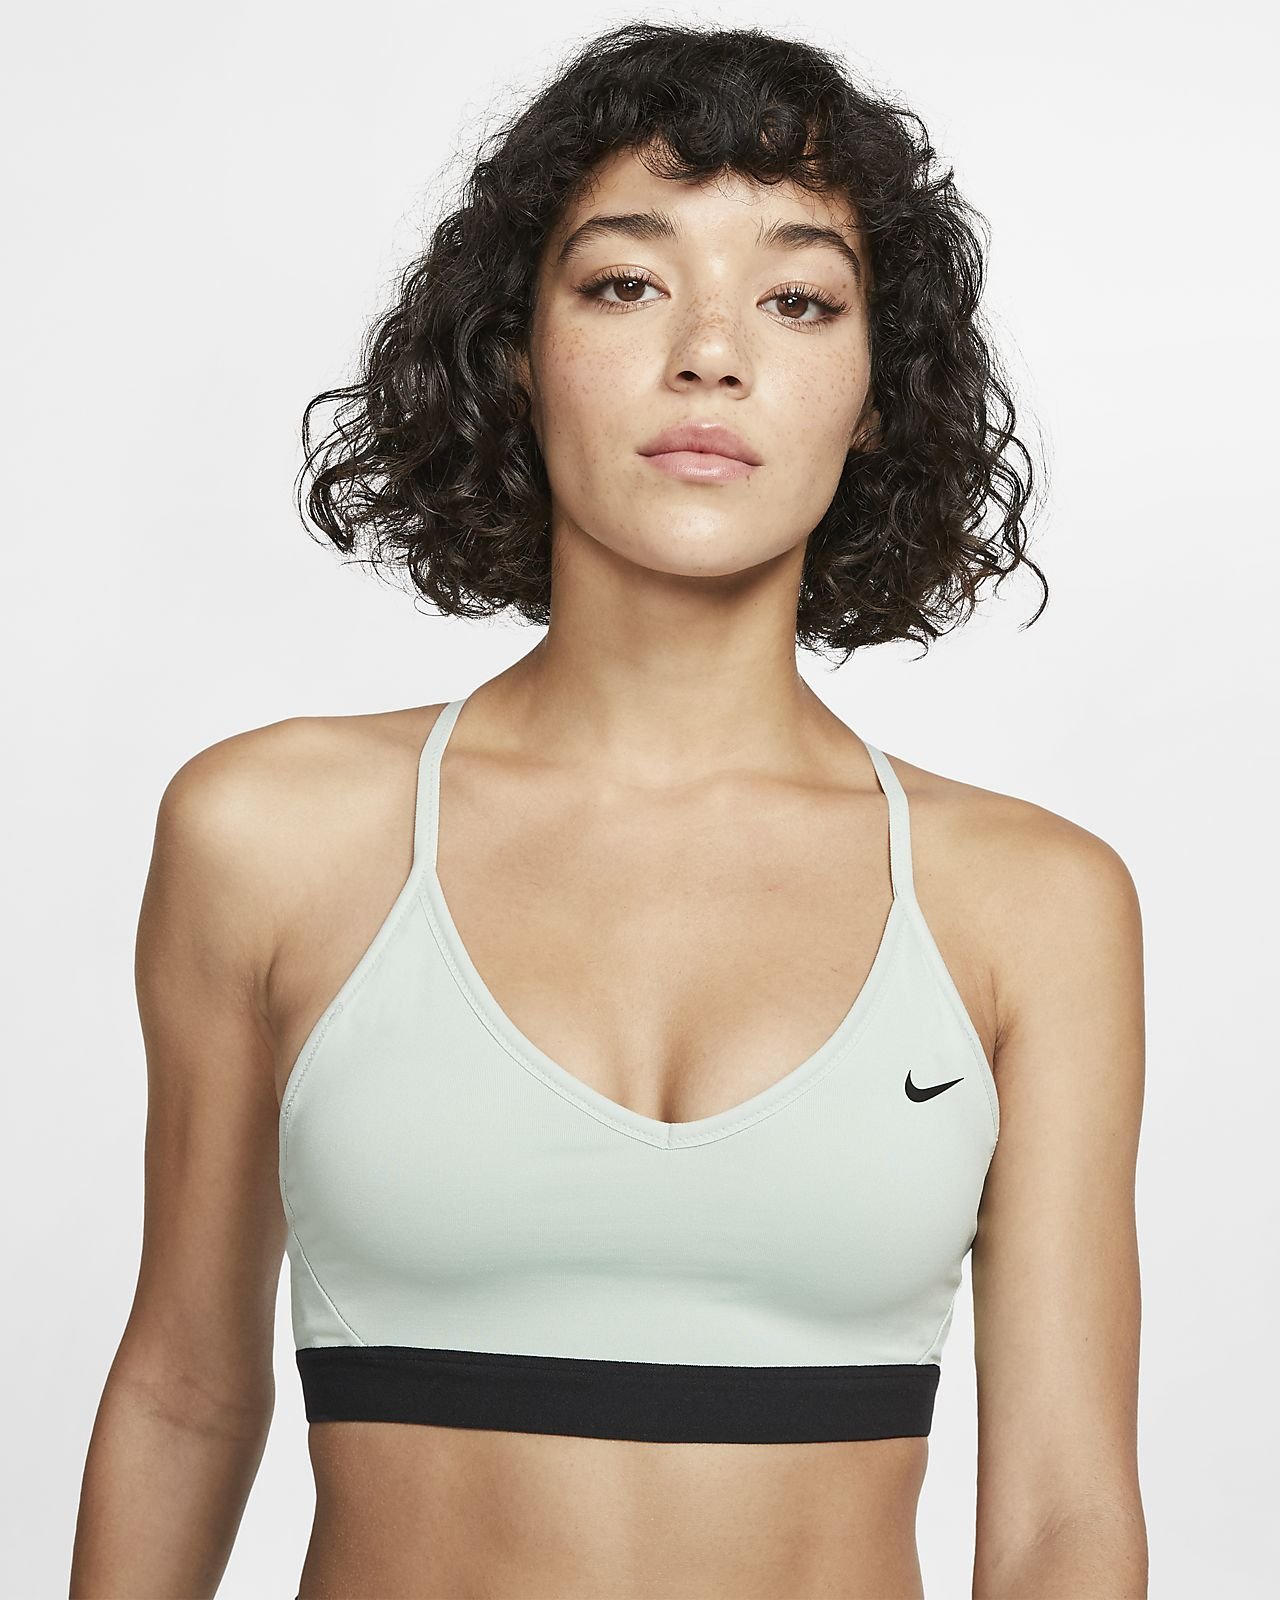 6c360c6491022 Nike Indy Women's Light-Support Sports Bra. Nike.com